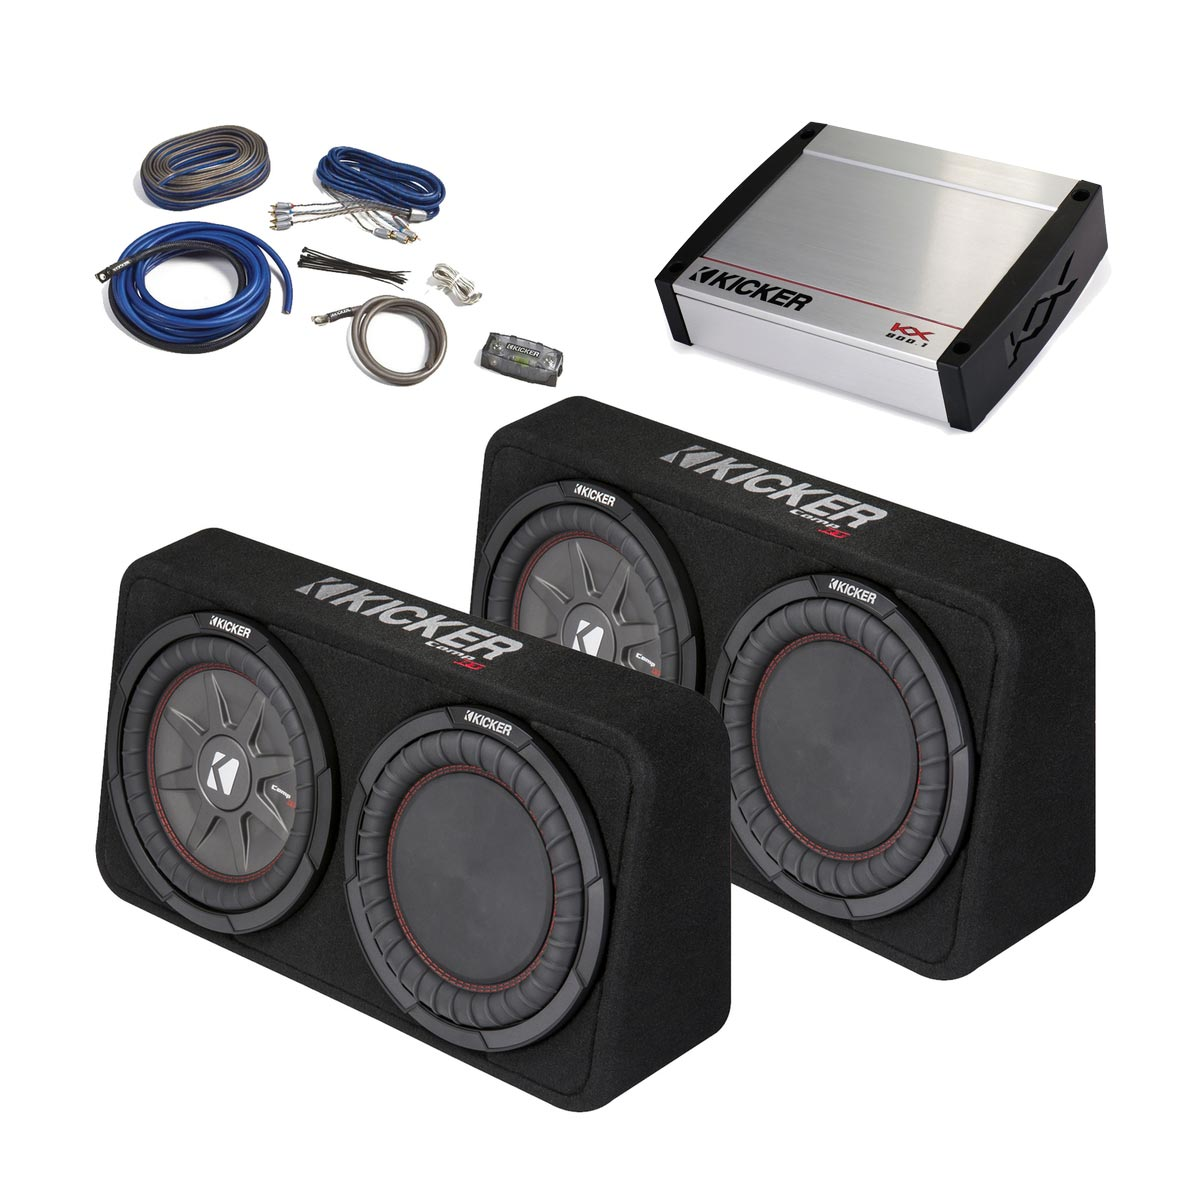 Kicker 43tcwrt104 10 Subs W Radiators Kx 800 Watt Amp 4 Awg Cvr 15 Inch Subwoofer In Box Addition 12 Wiring Bass Package Two Thin Loaded Amplifier Kit